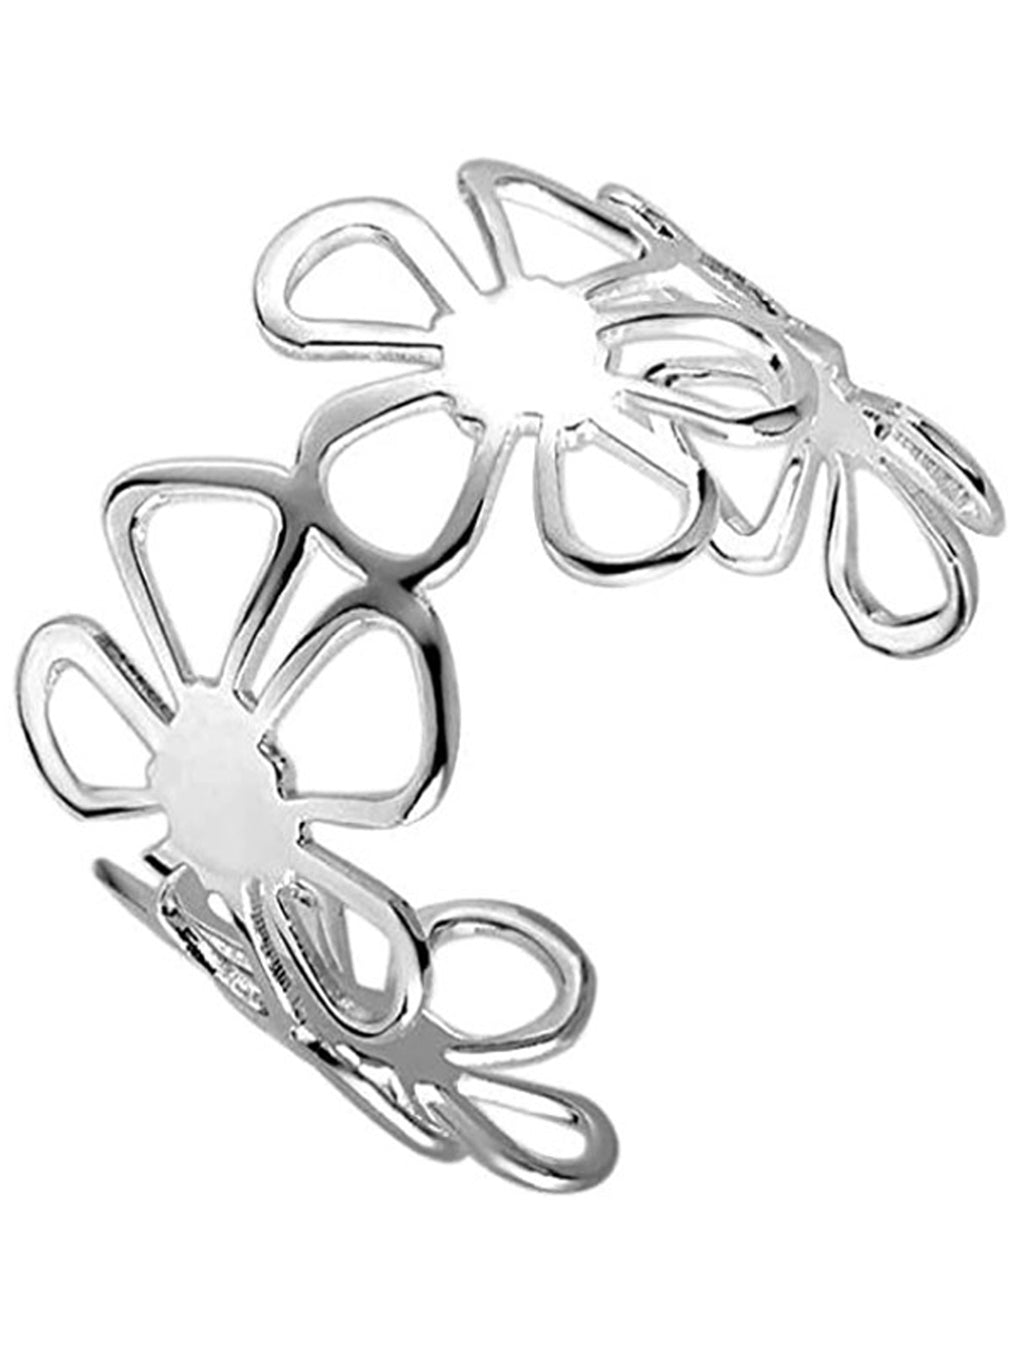 Sterling Silver Plated Retro Floral Bangle Cuff Bracelet